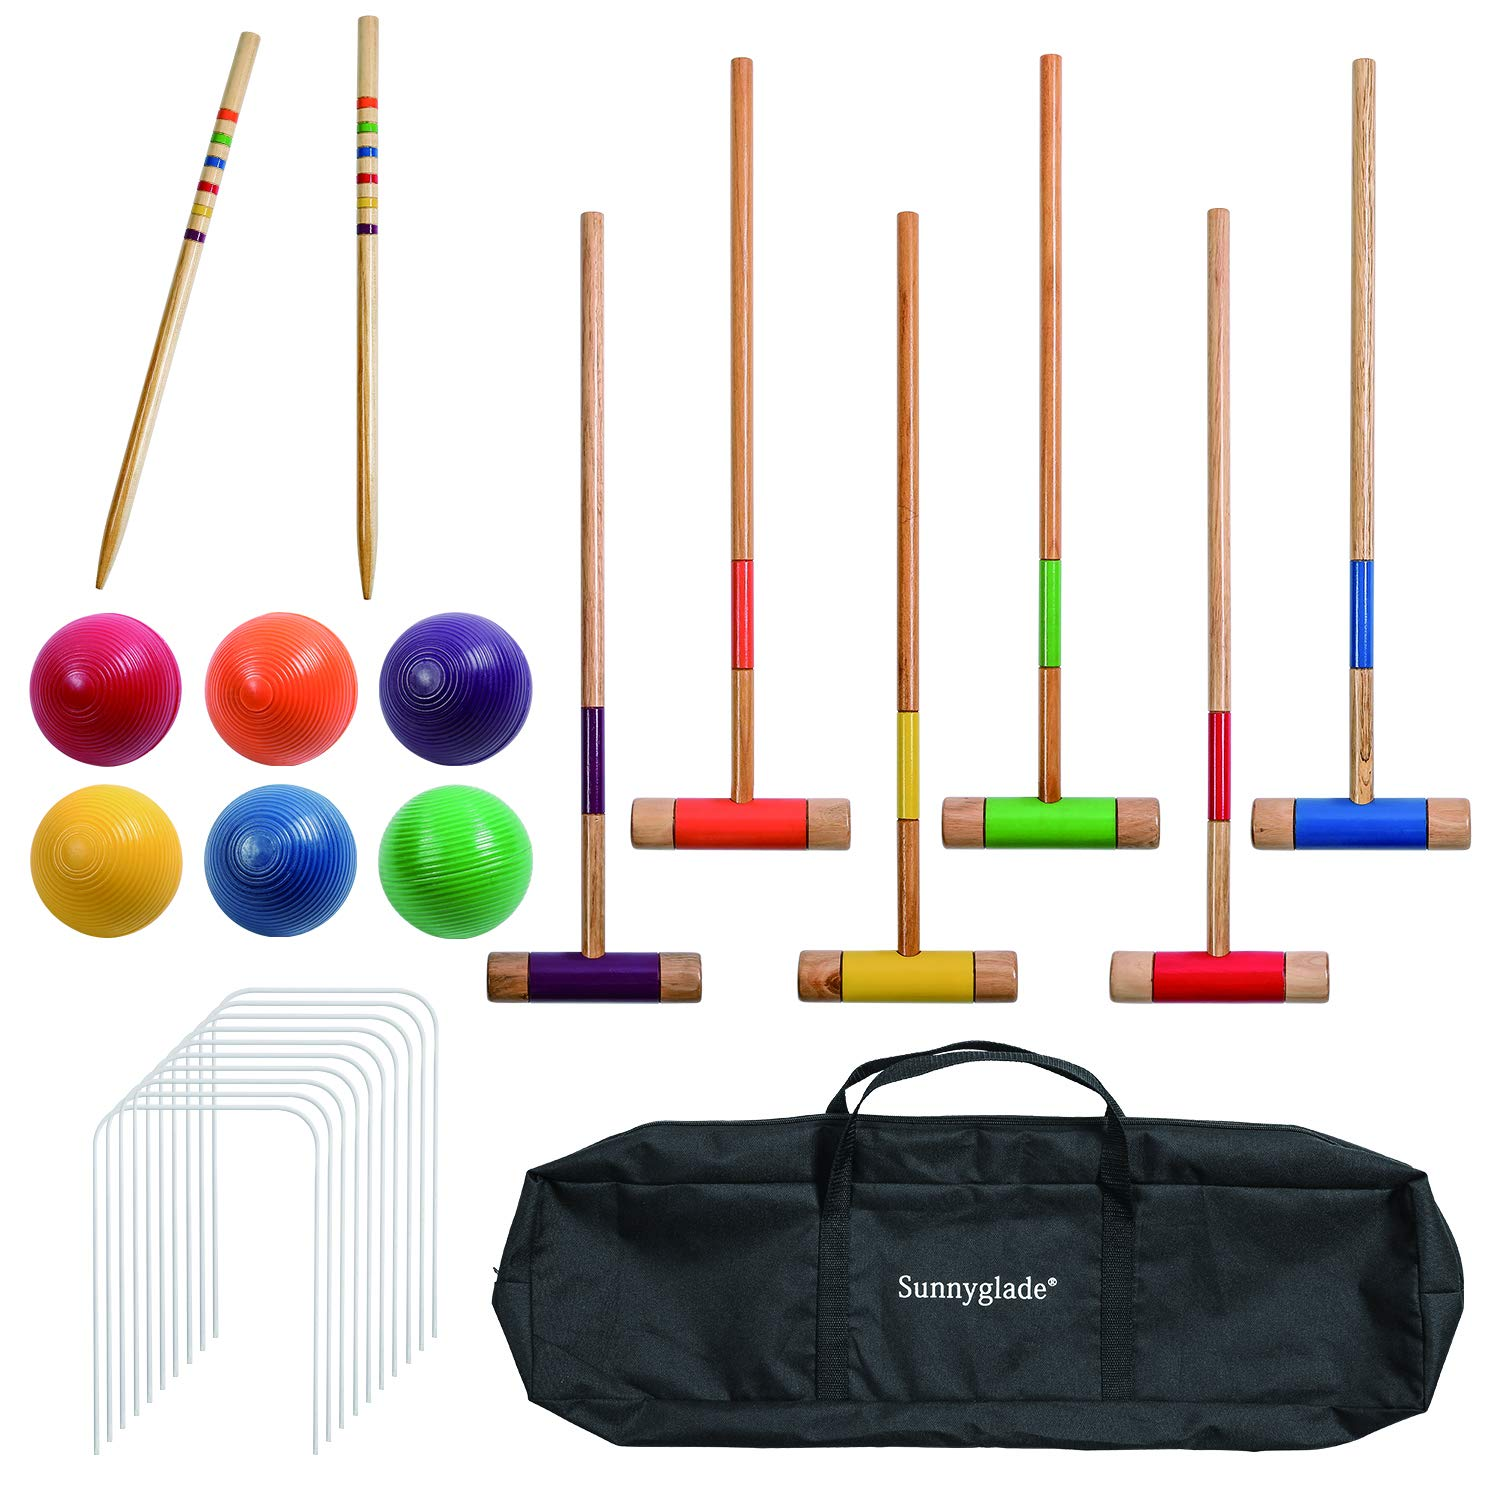 Sunnyglade 28inch Six Player Croquet Set with Classic Wooden Mallets, Colored Balls, Wickets, Stakes, Sturdy Carrying Bag by Sunnyglade